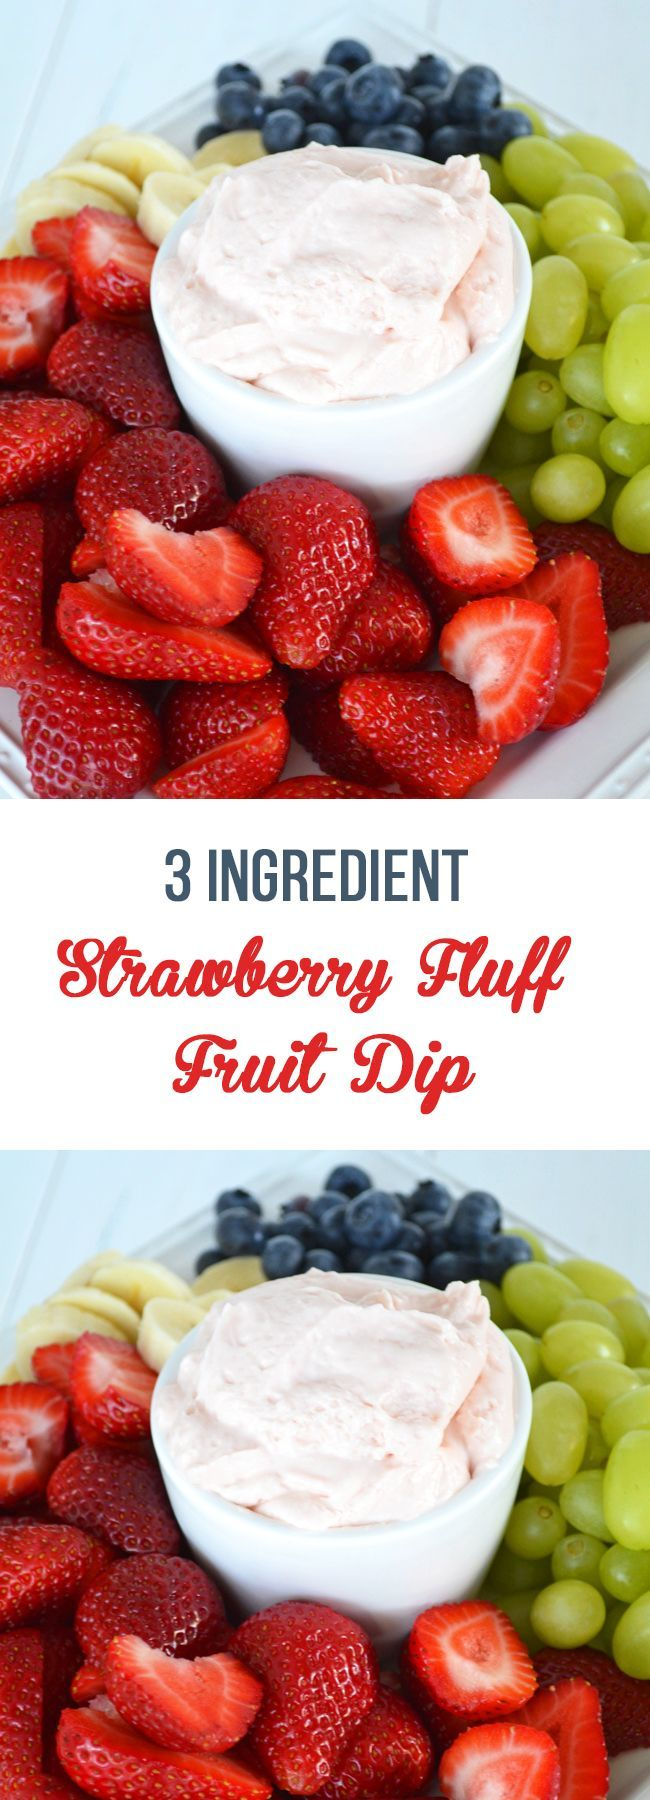 You are just 3 ingredients and 5 minutes away from the most delicious fruit dip you've ever had.